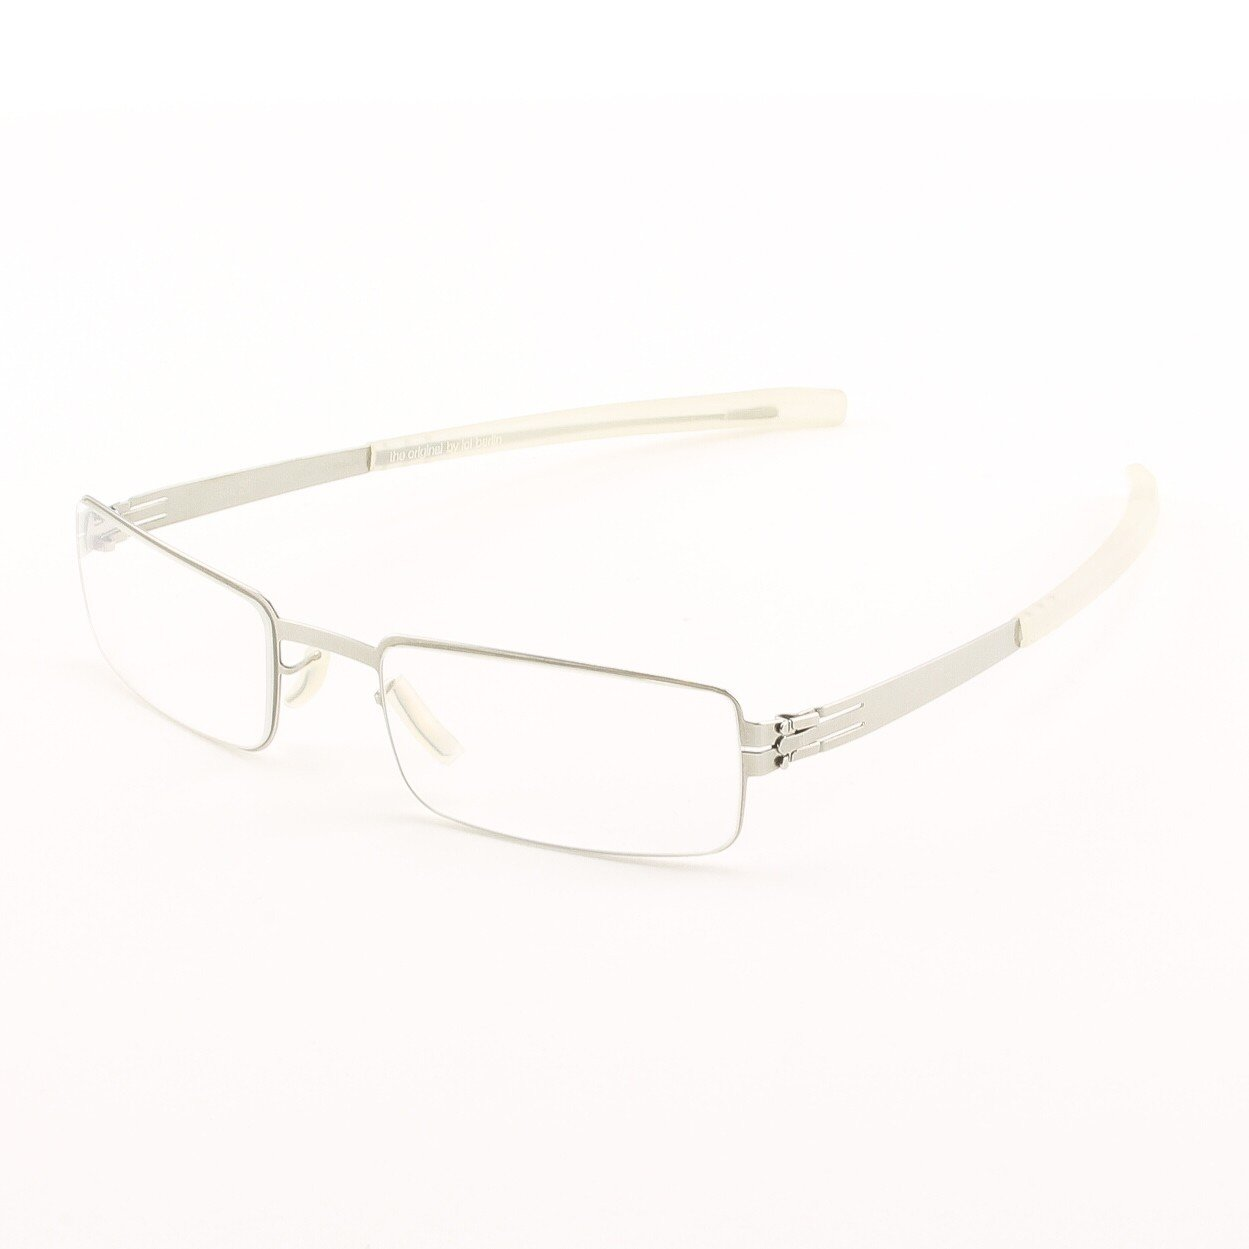 ic! Berlin Fritz W. Eyeglasses Col. Chrome with Clear Lenses